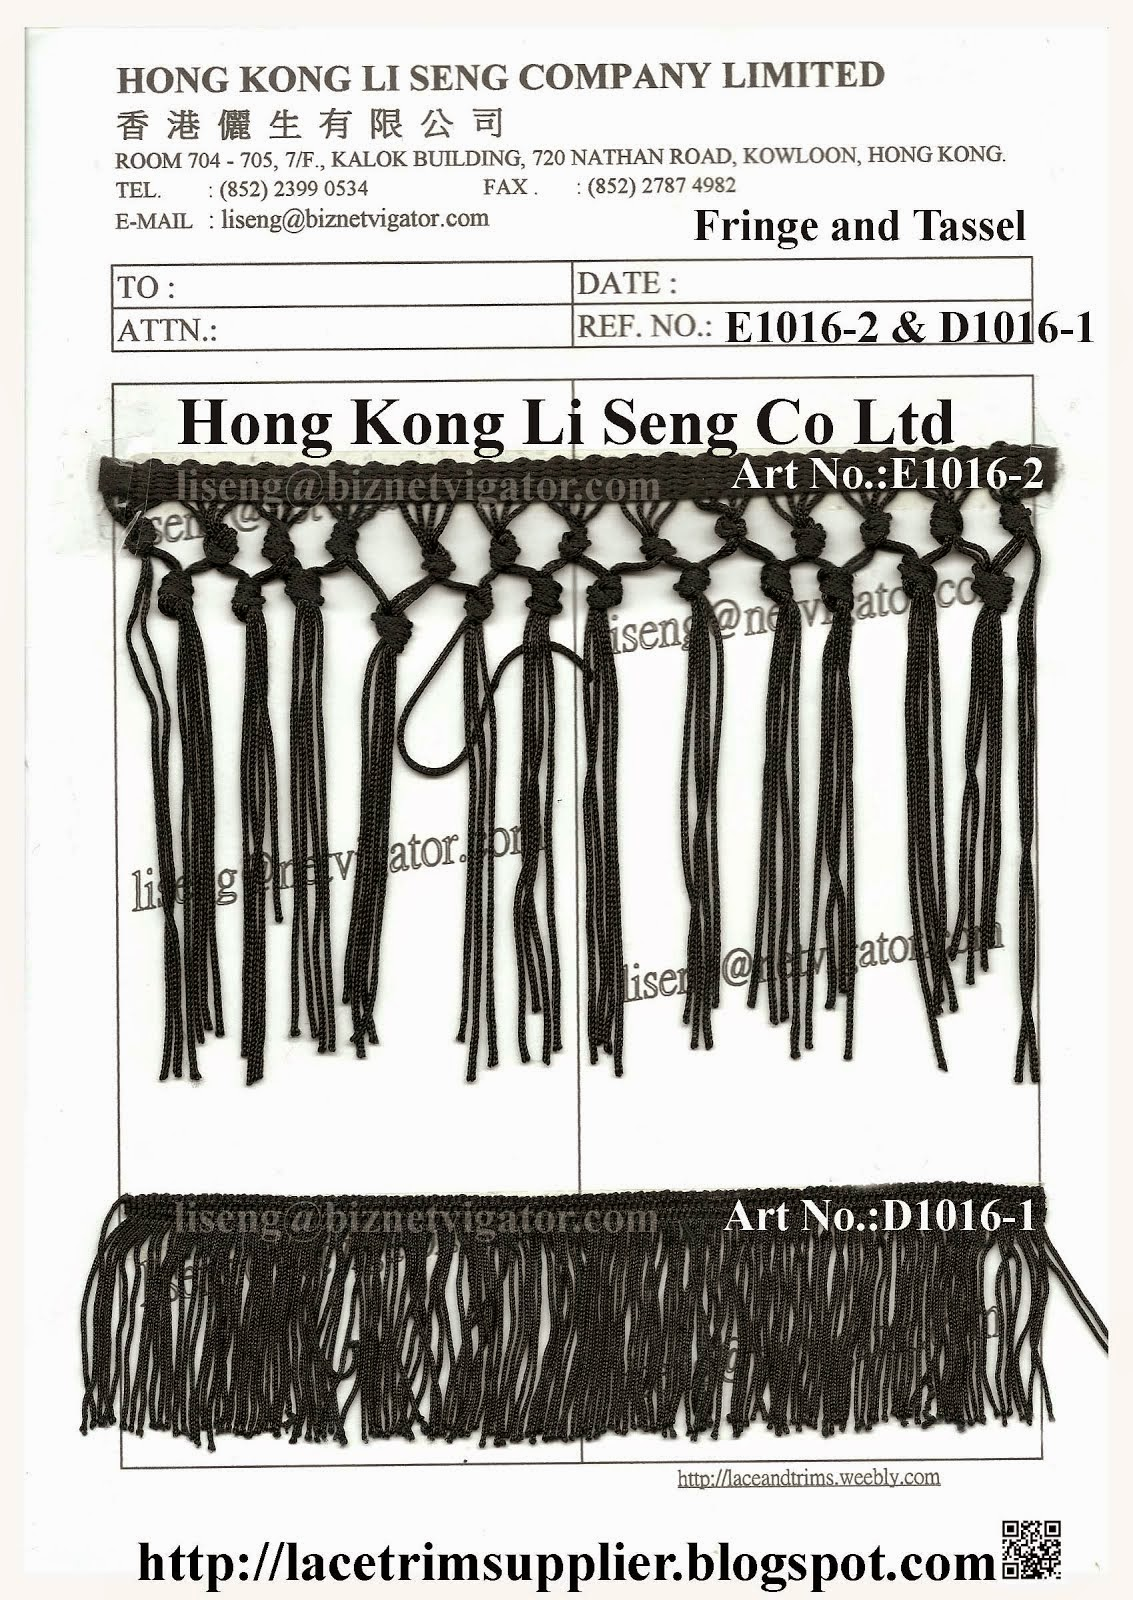 Fringe and Tassel Manufacturer Wholesale Supplier - Hong Kong Li Seng Co Ltd